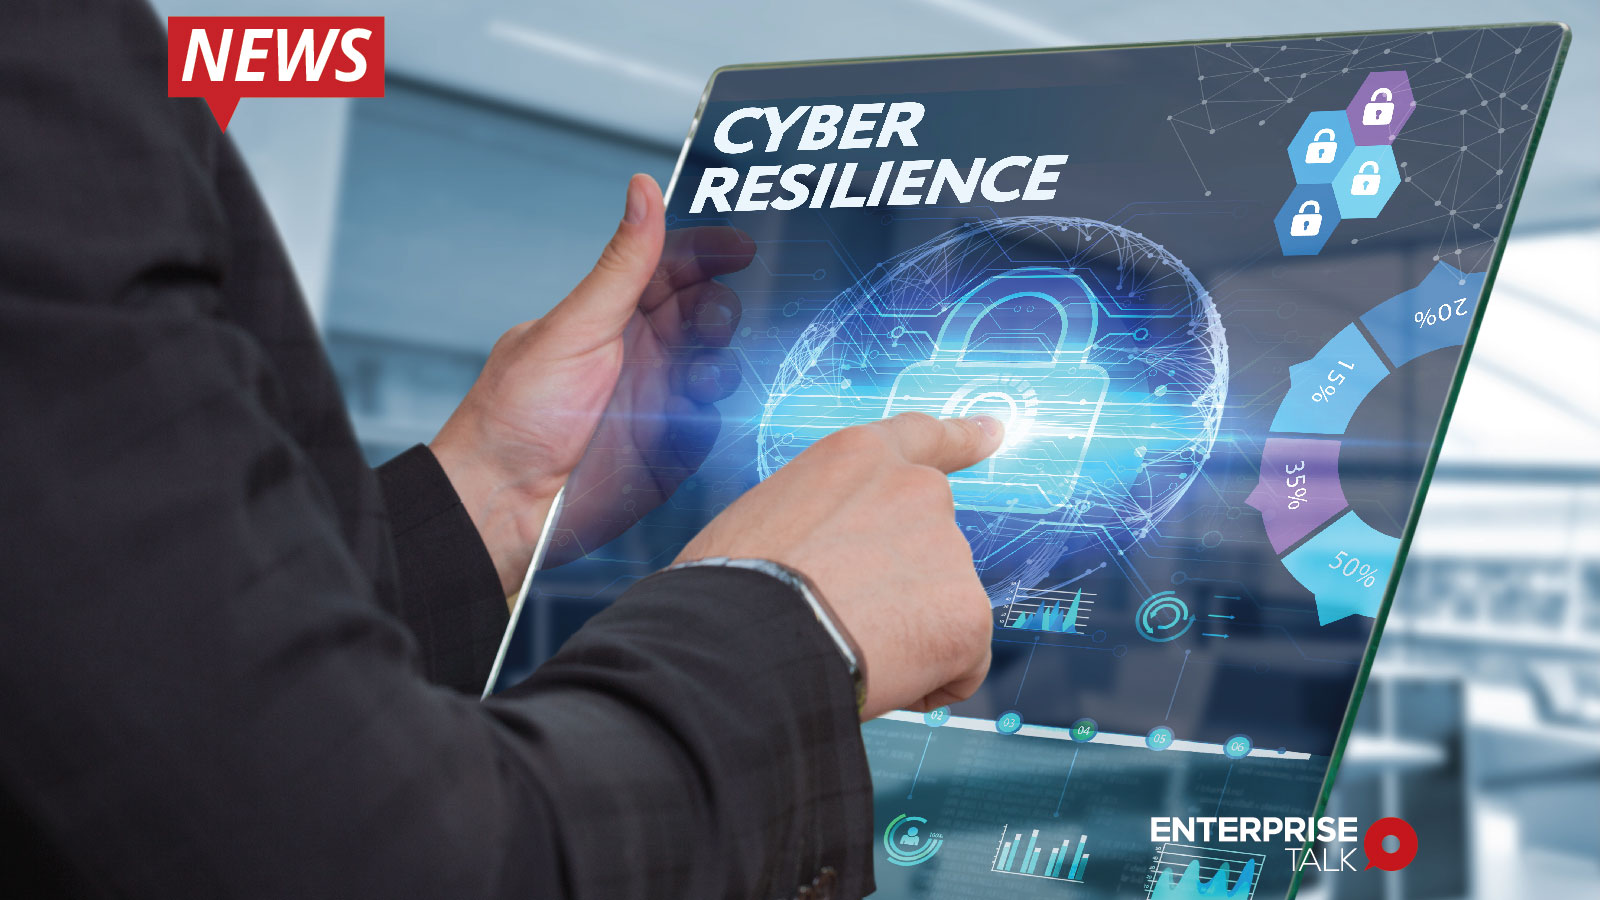 Human skill and expertise, cyber resilience, Infosecurity, information security, cyber-attacks